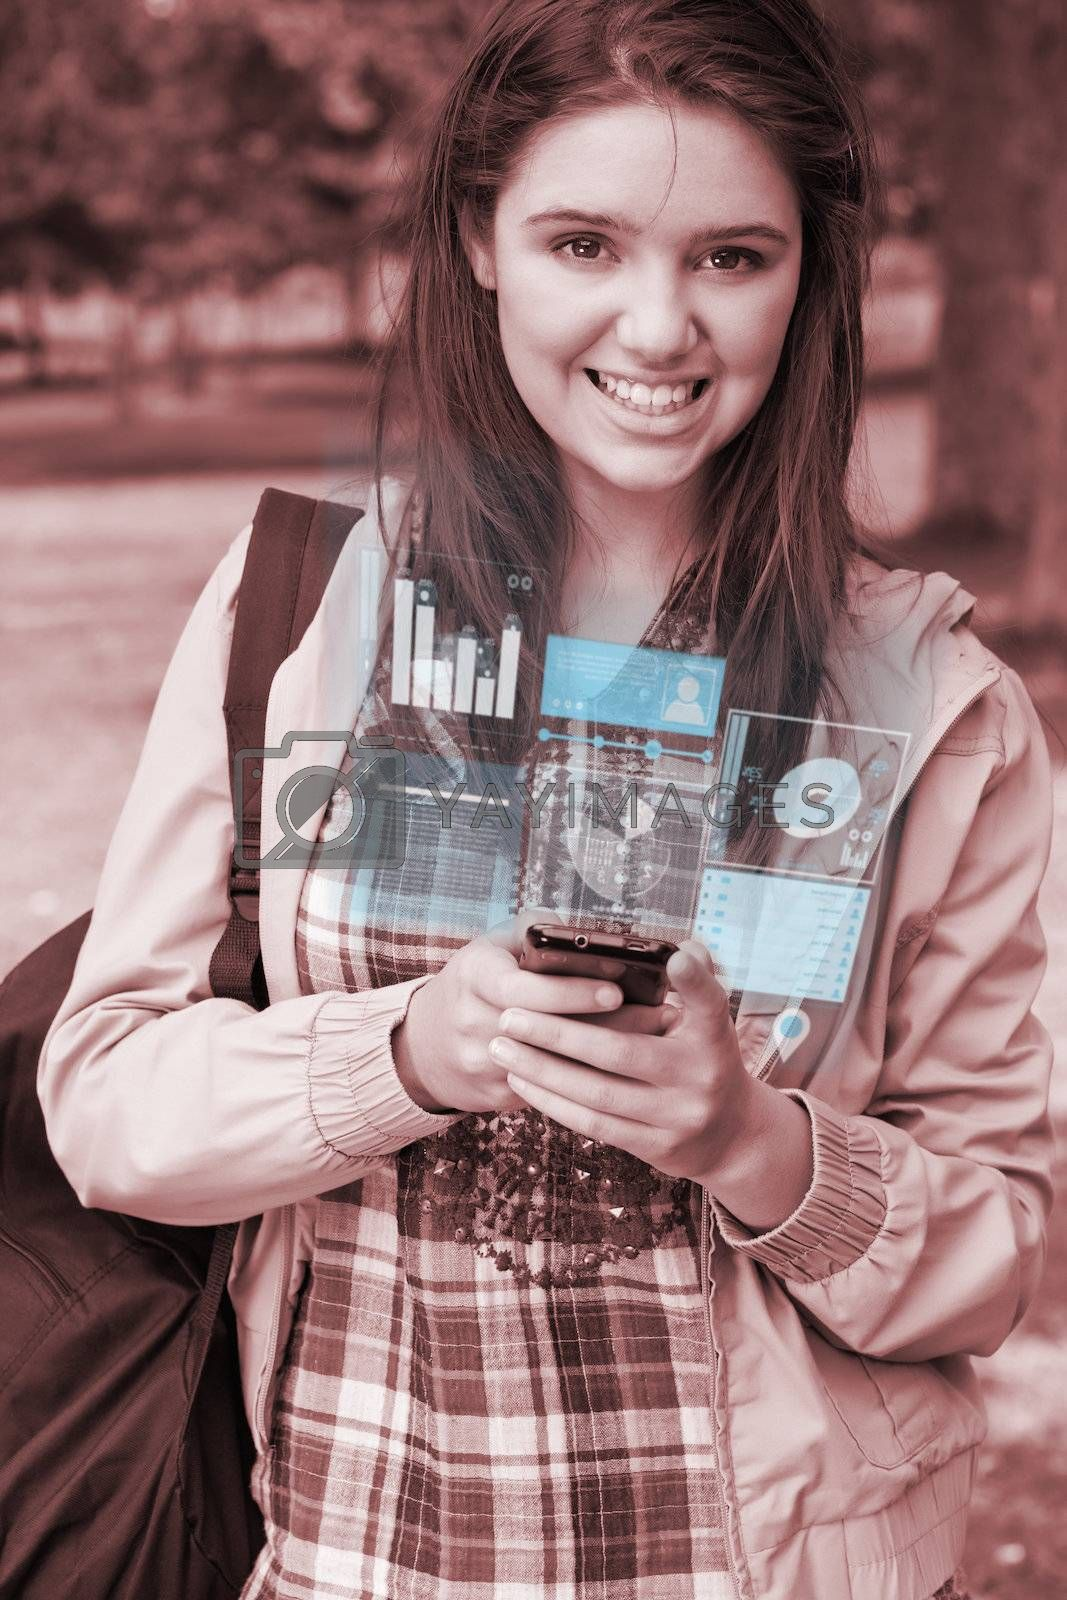 Smiling young woman working on her futuristic smartphone by Wavebreakmedia